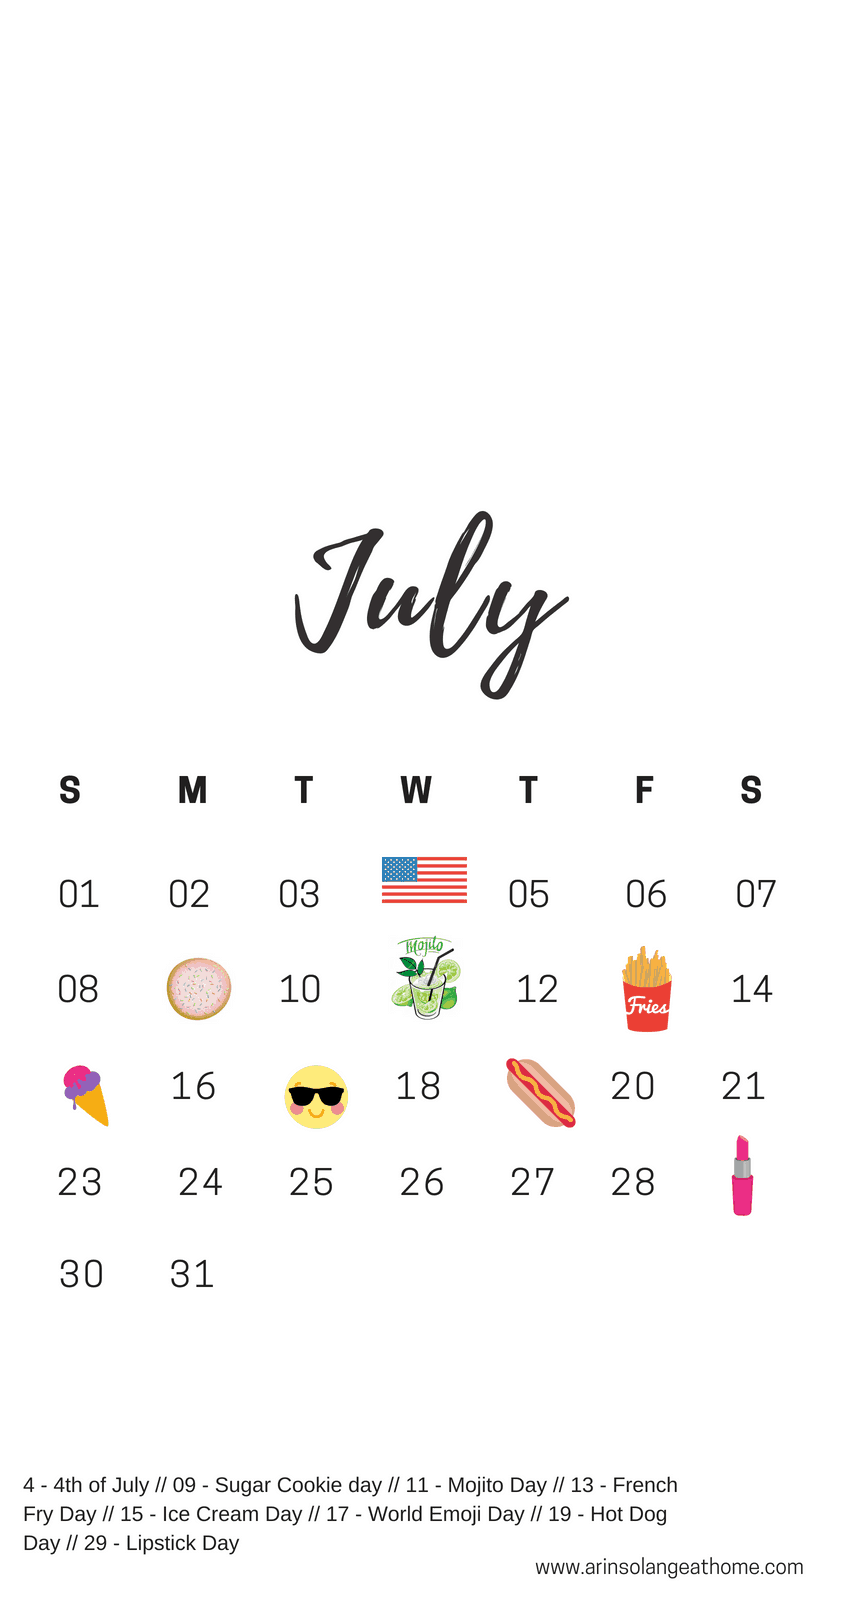 July national holiday calendar